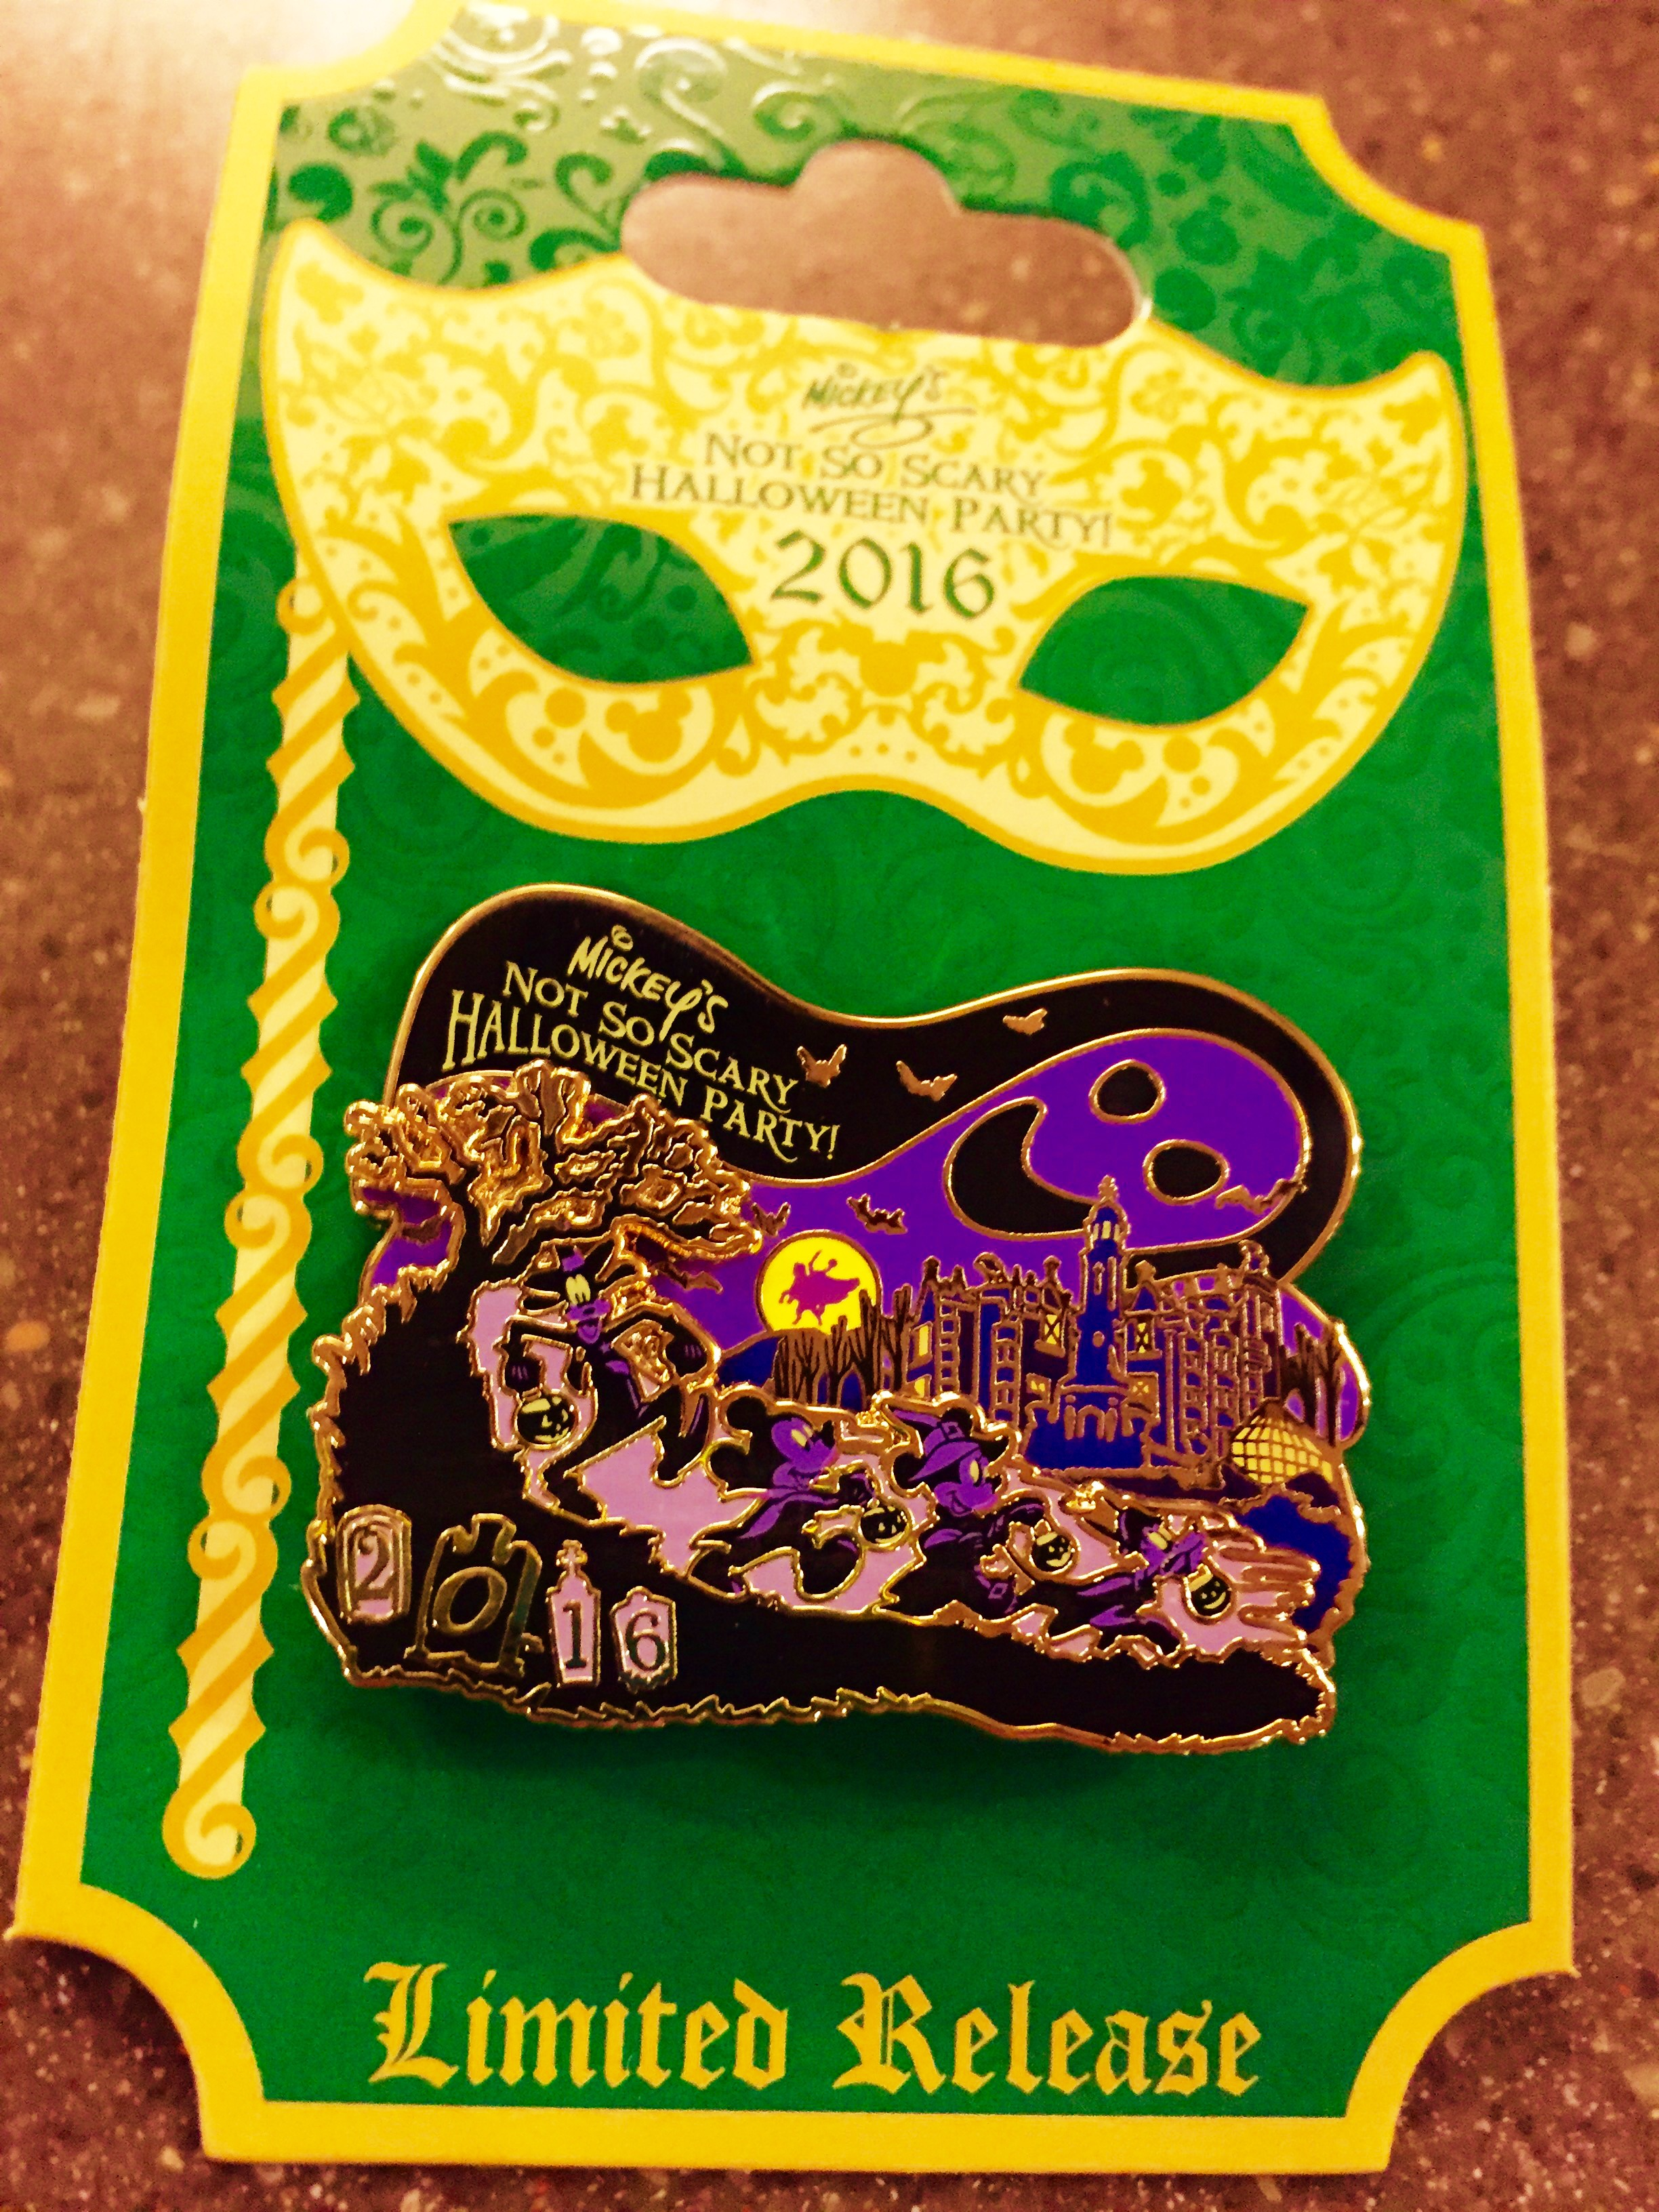 Mickey's Not So Scary Halloween 2016 Party exclusive pin